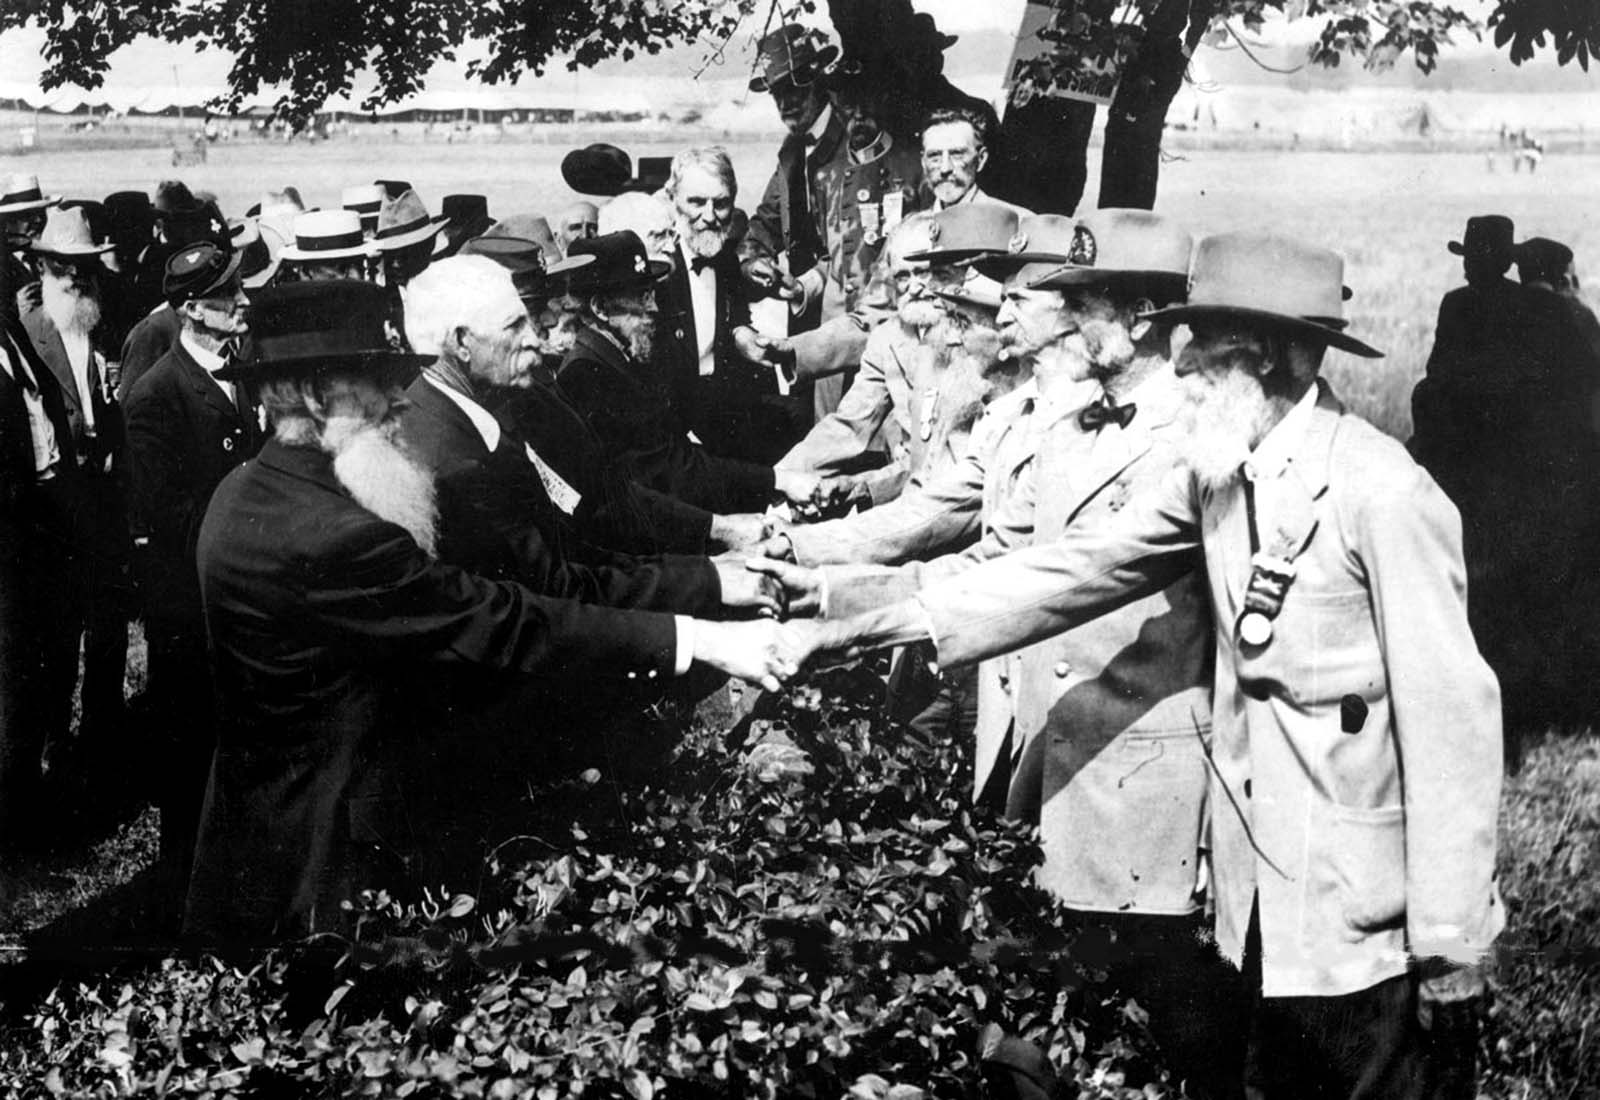 At the 50th anniversary of the battle of Gettysburg, Union (left) and Confederate (right) veterans shake hands at a reunion, in Gettysburg, Pennsylvania. 1913.